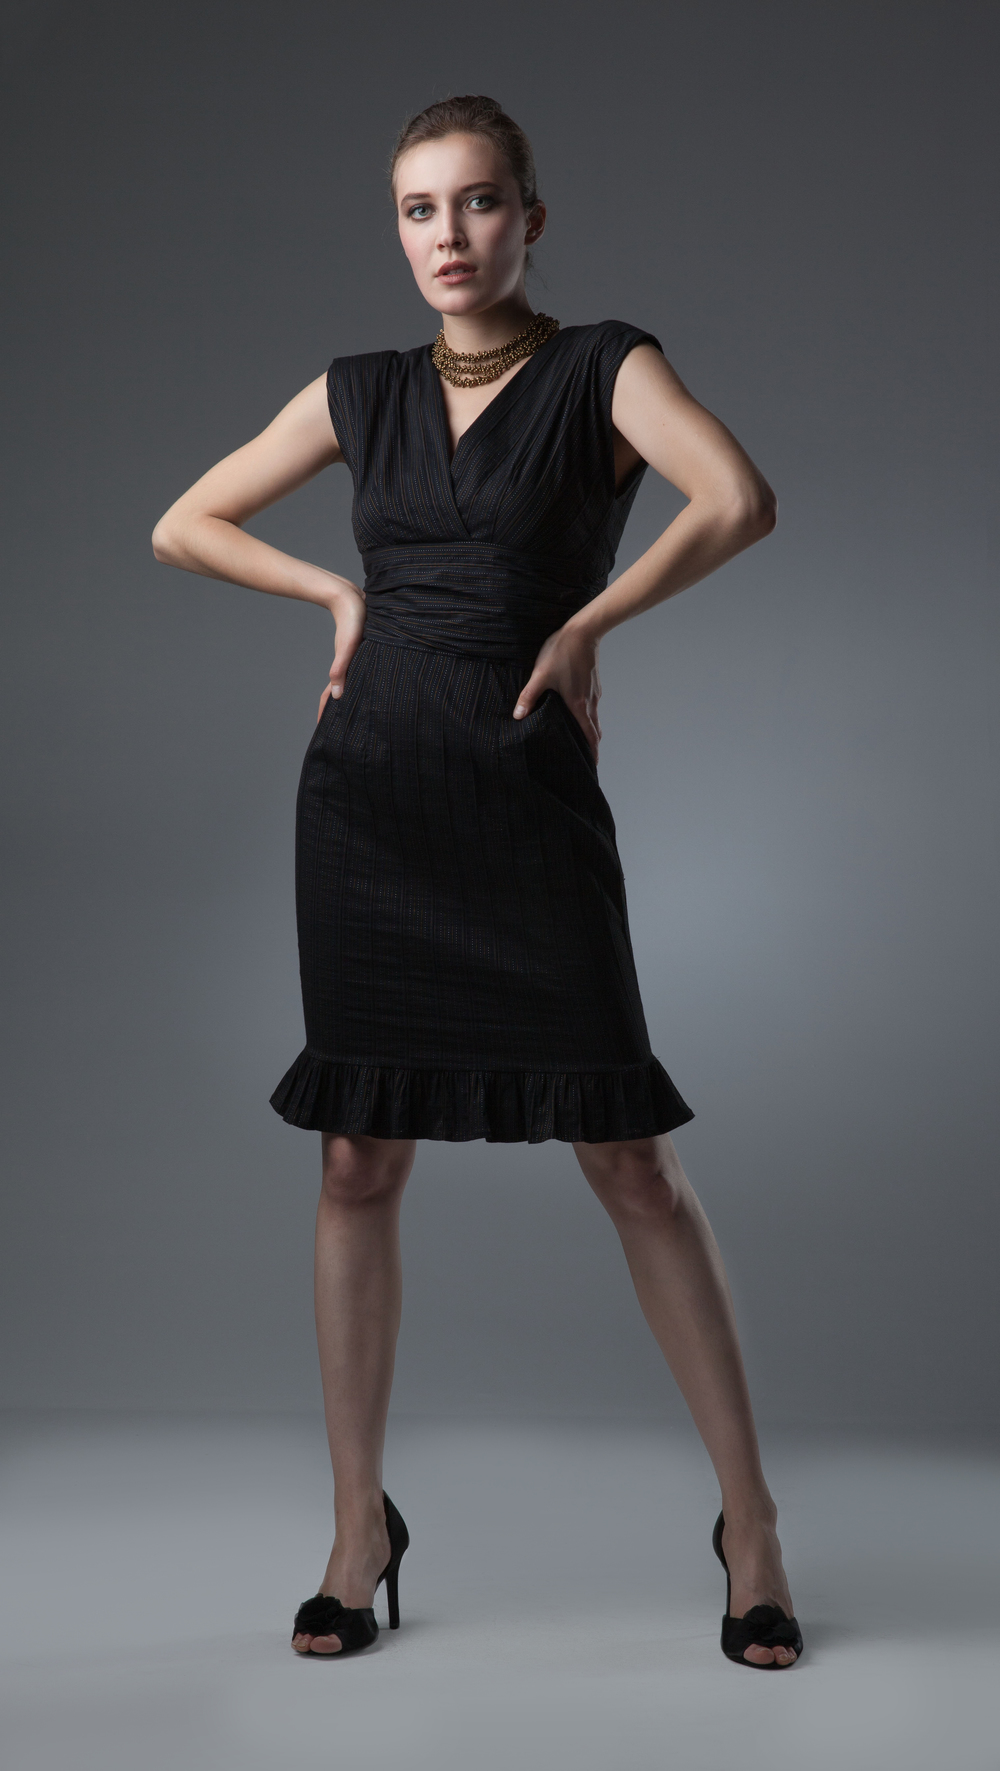 Hume & Body-1201 text dress fl.jpg